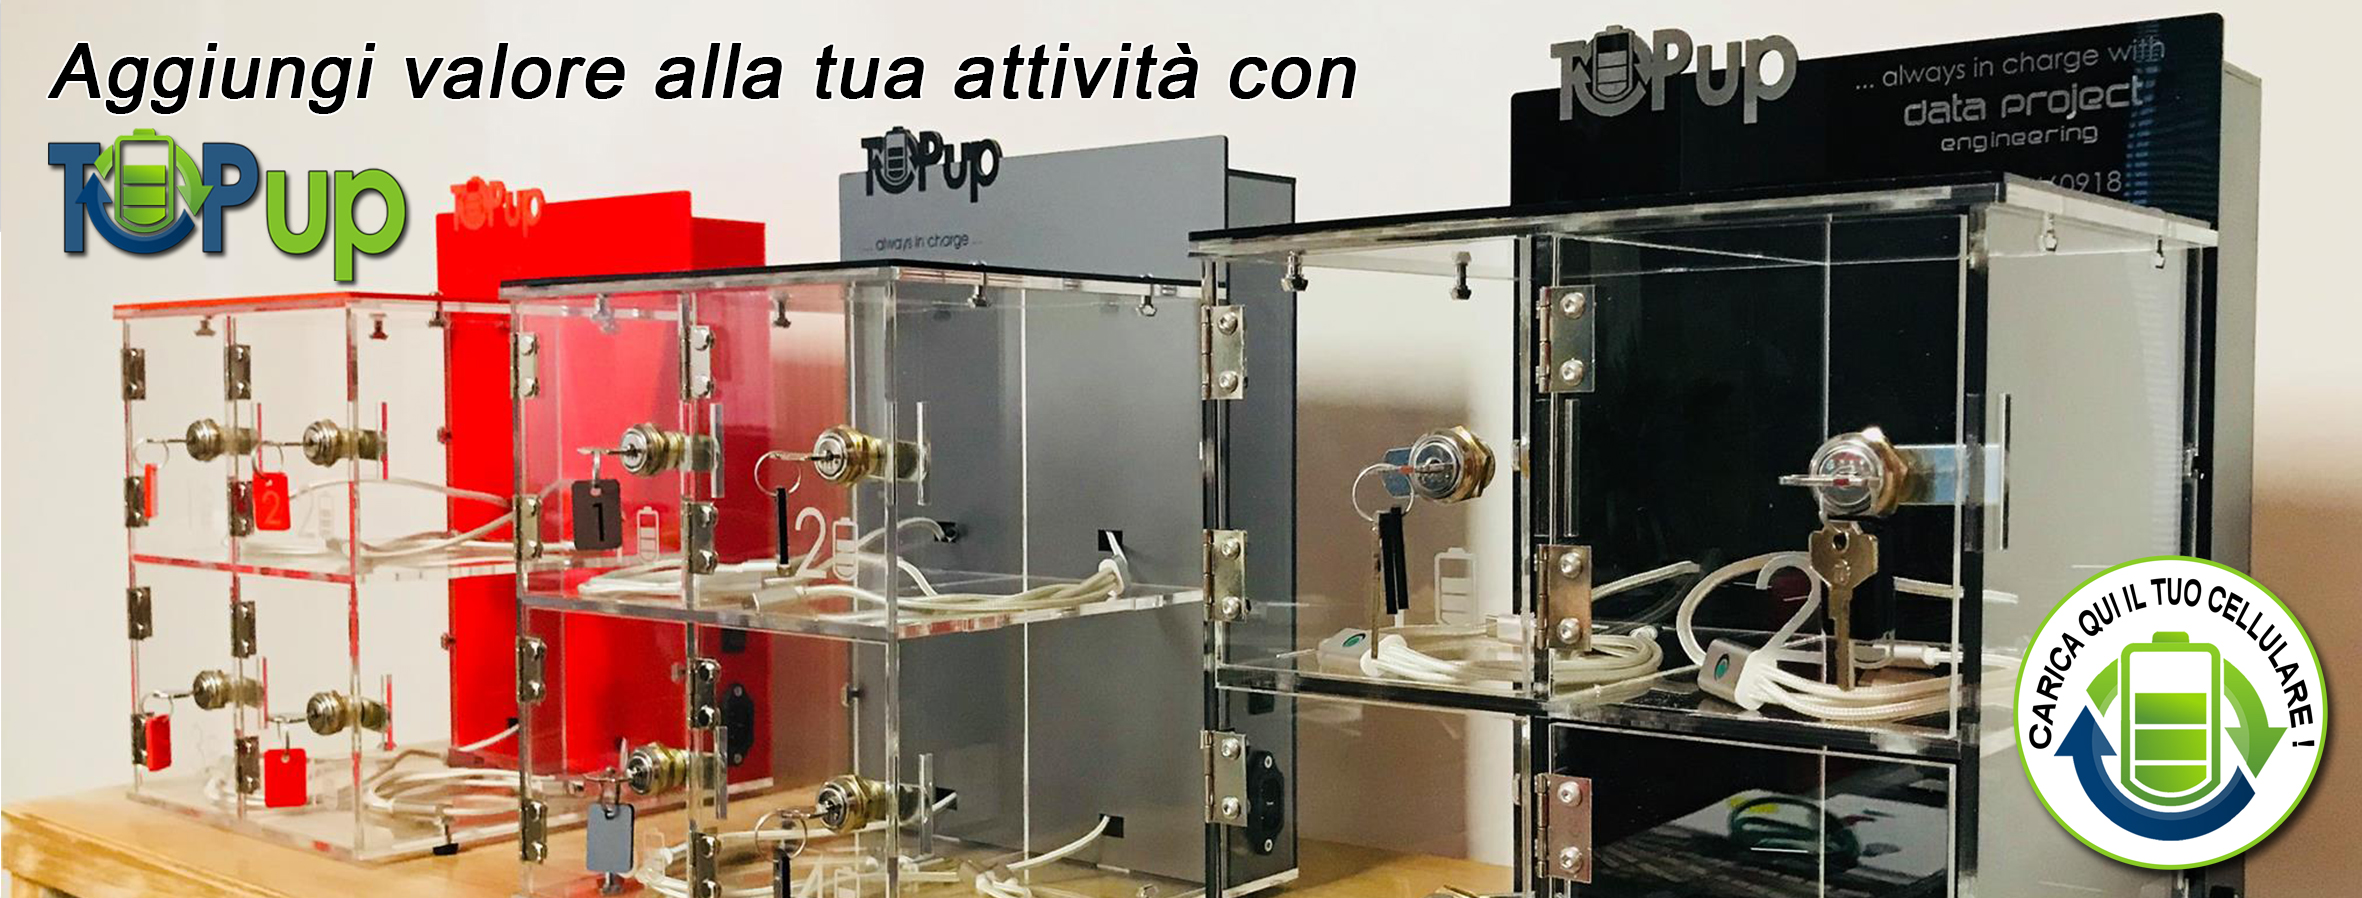 home-banner-TABACCHI.jpg